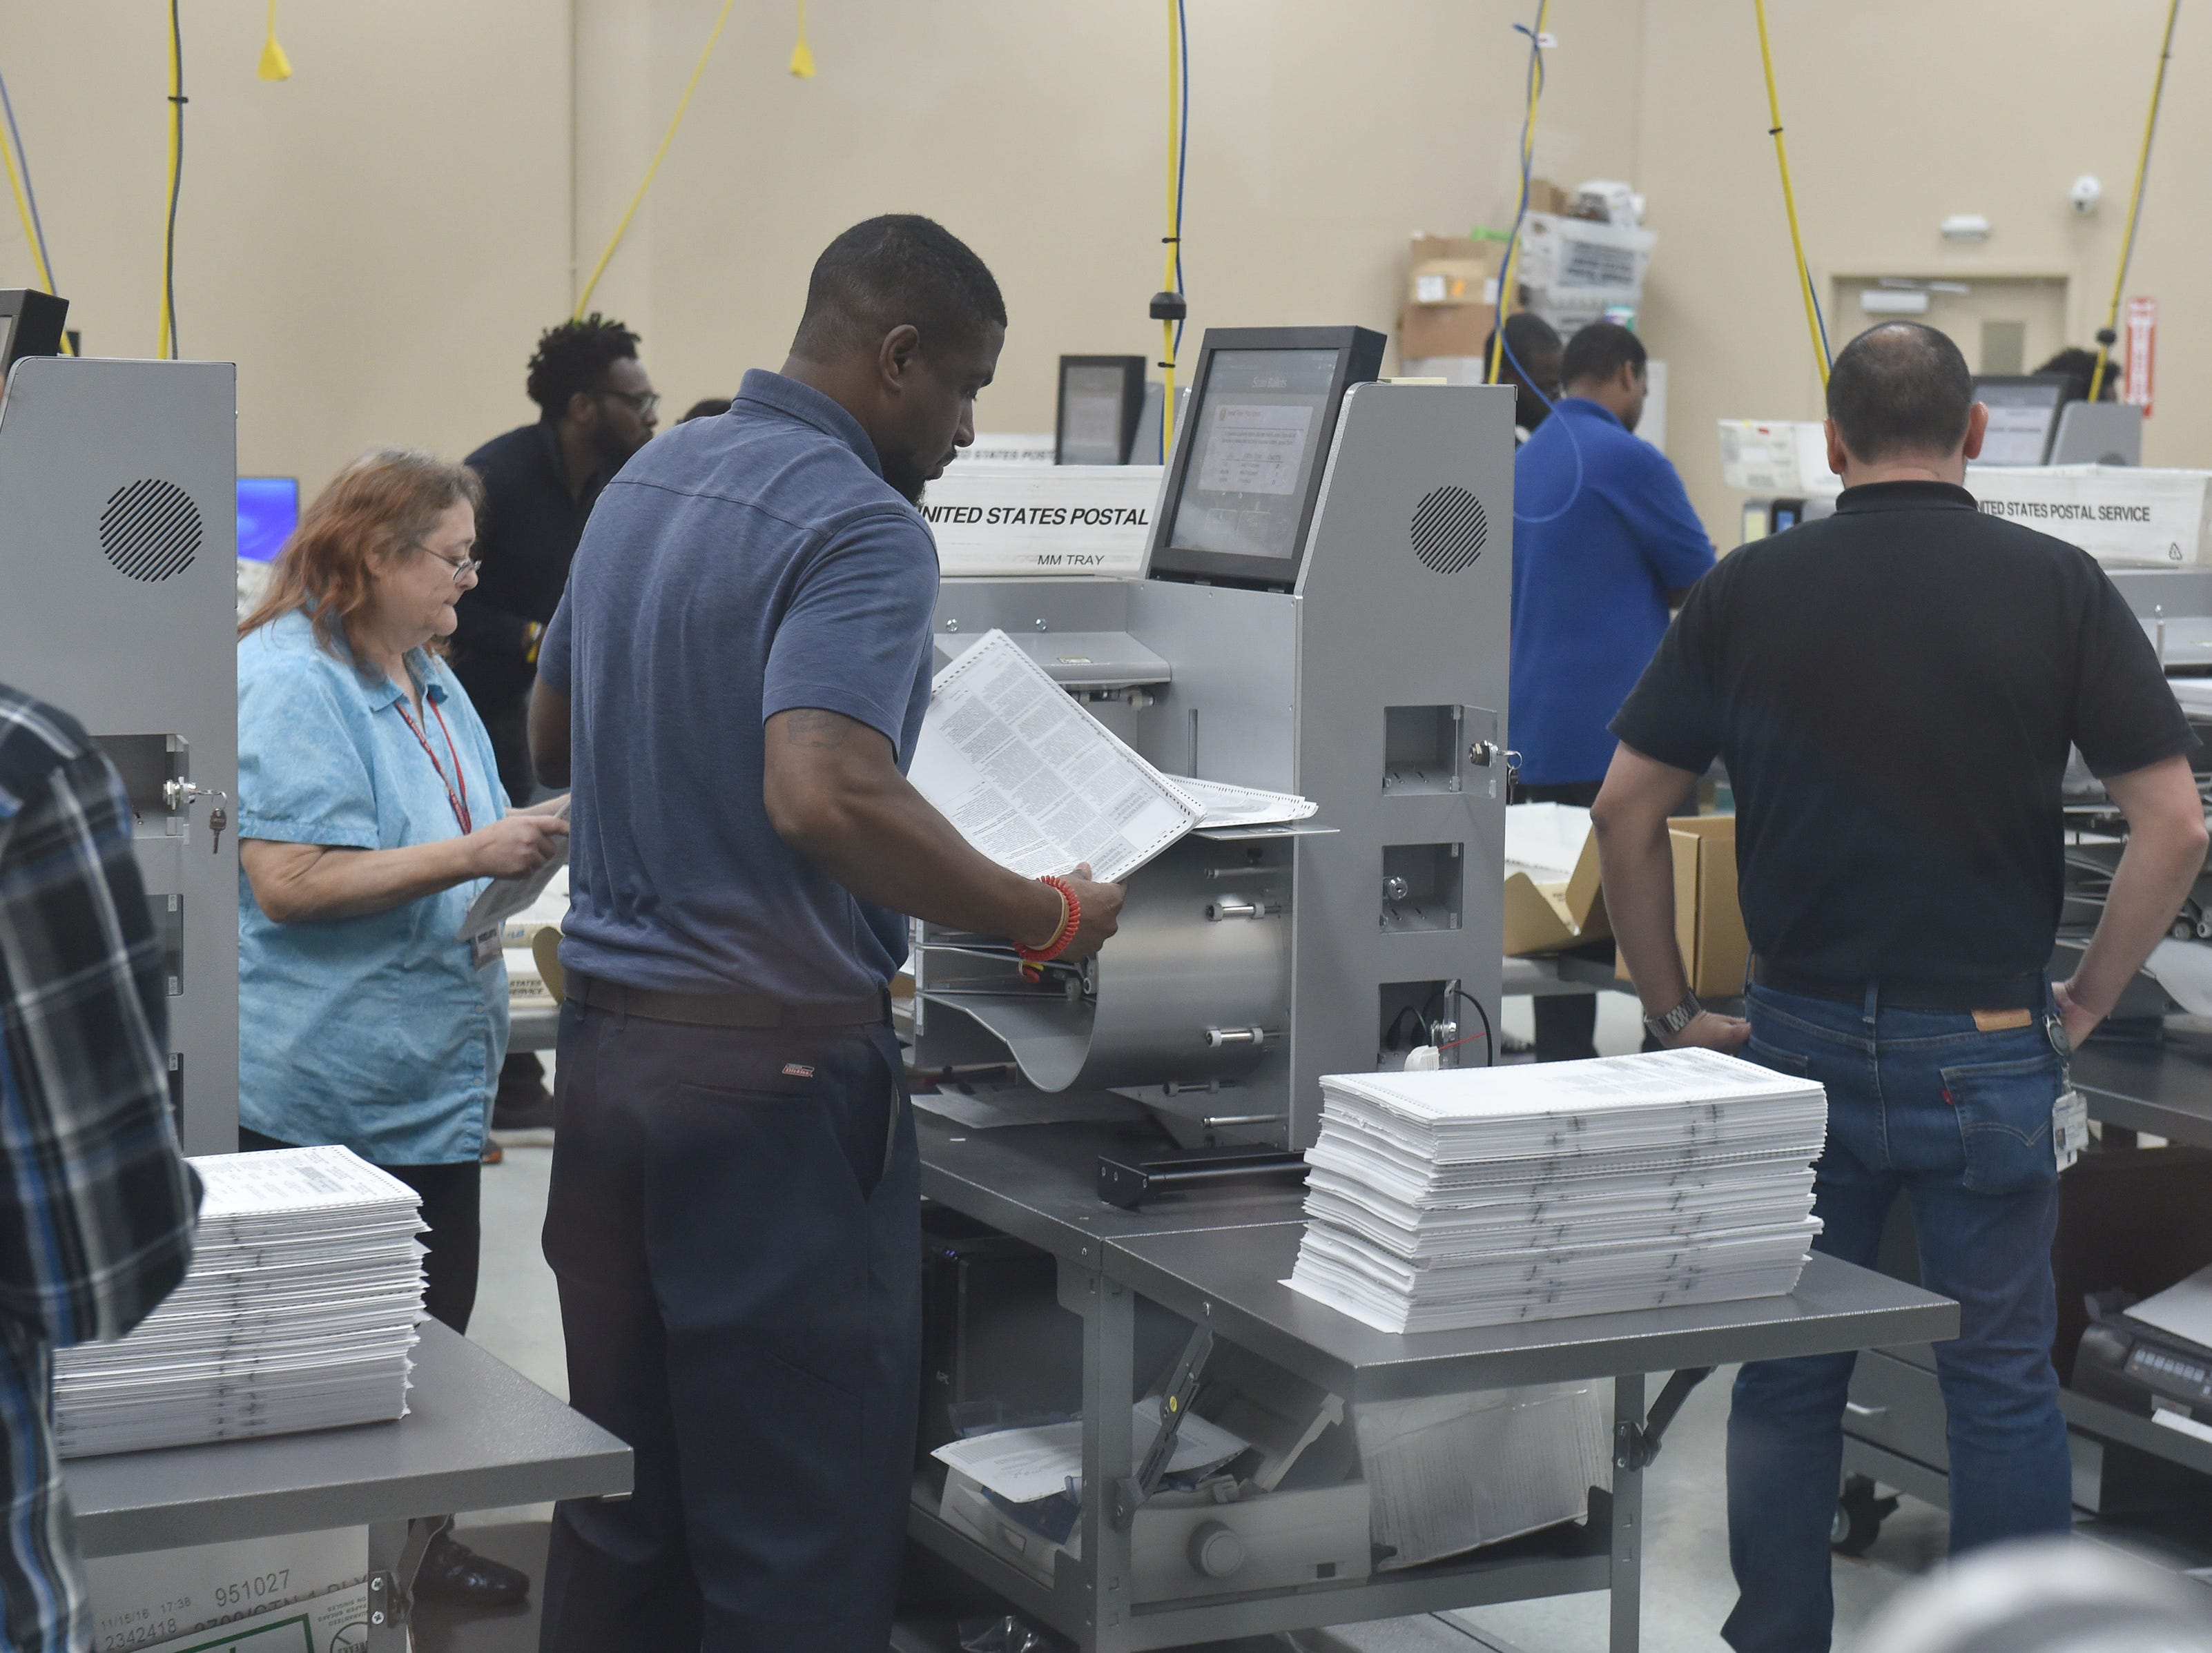 Broward County Supervisor of Election's office works a more than 30-hour operation of sorting the first page of ballots from 3.5 million pages of ballots on Sunday, Nov. 11, 2018, at the elections office in Lauderhill, Florida. The Secretary of State has ordered a machine recount in the Governor, U.S. Senate, and the Florida Commissioner of Agriculture contests.